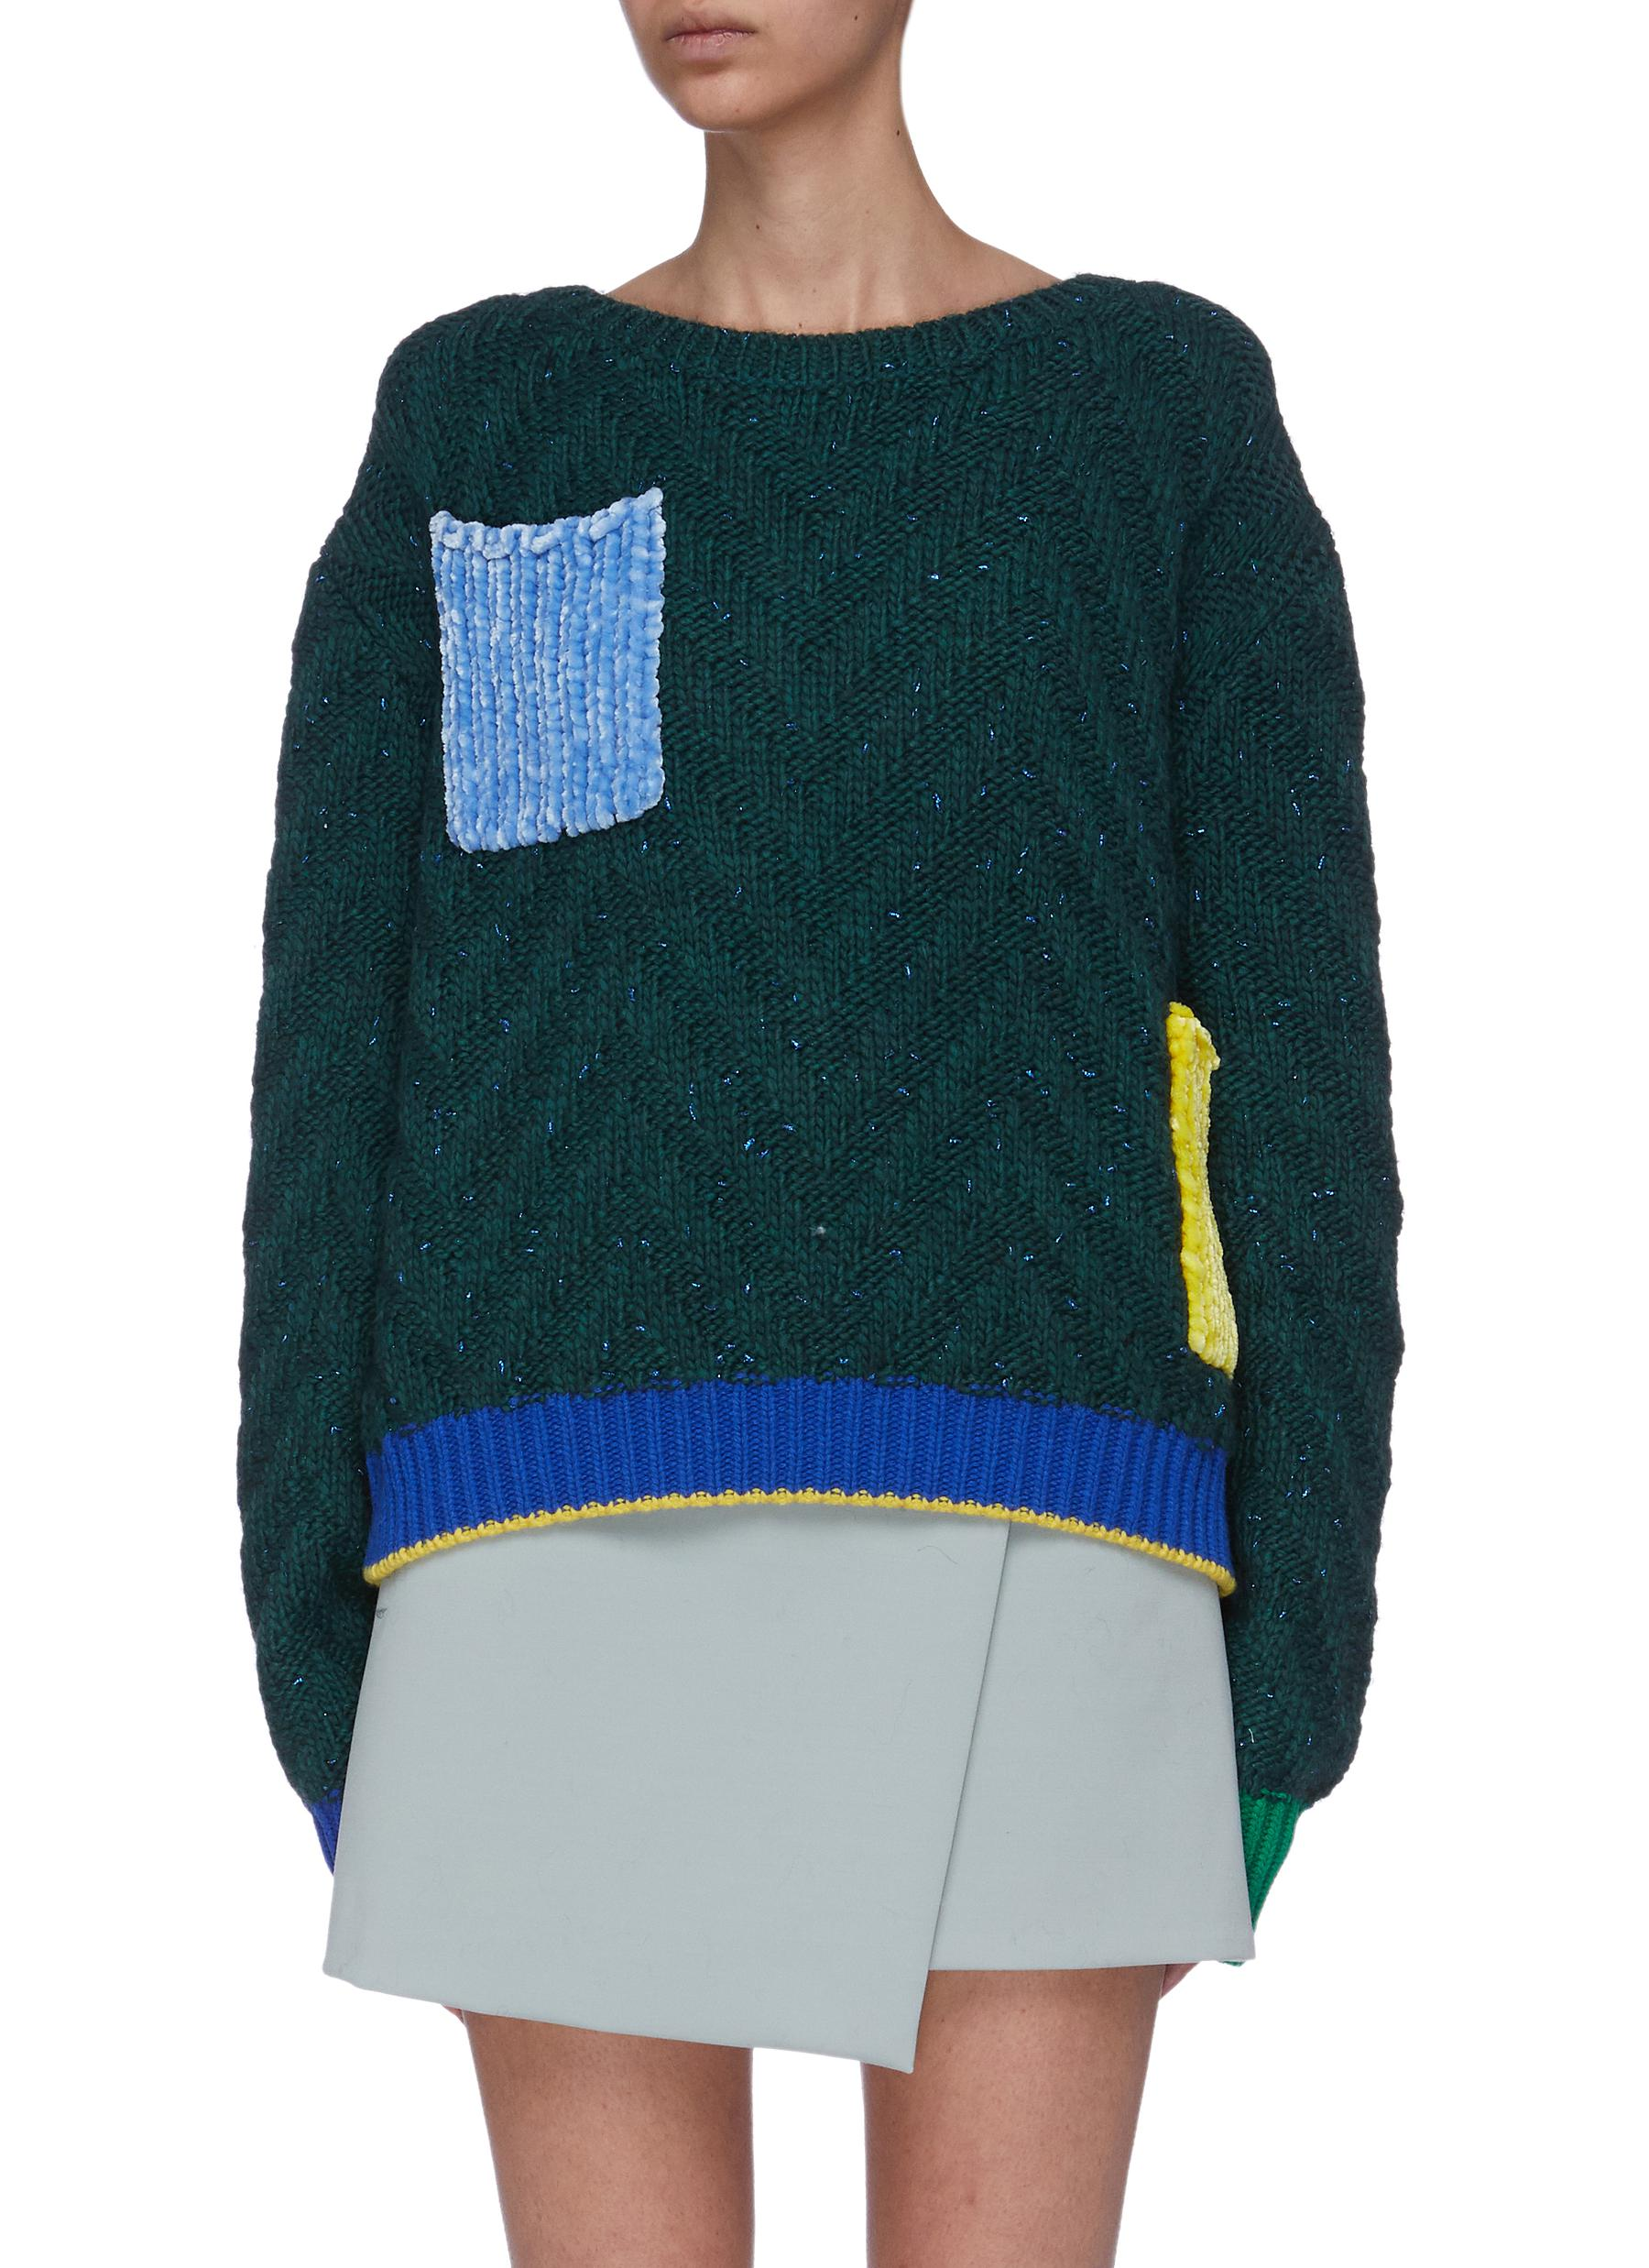 Contrast chenille patch pocket chevron knit sweater by I-Am-Chen